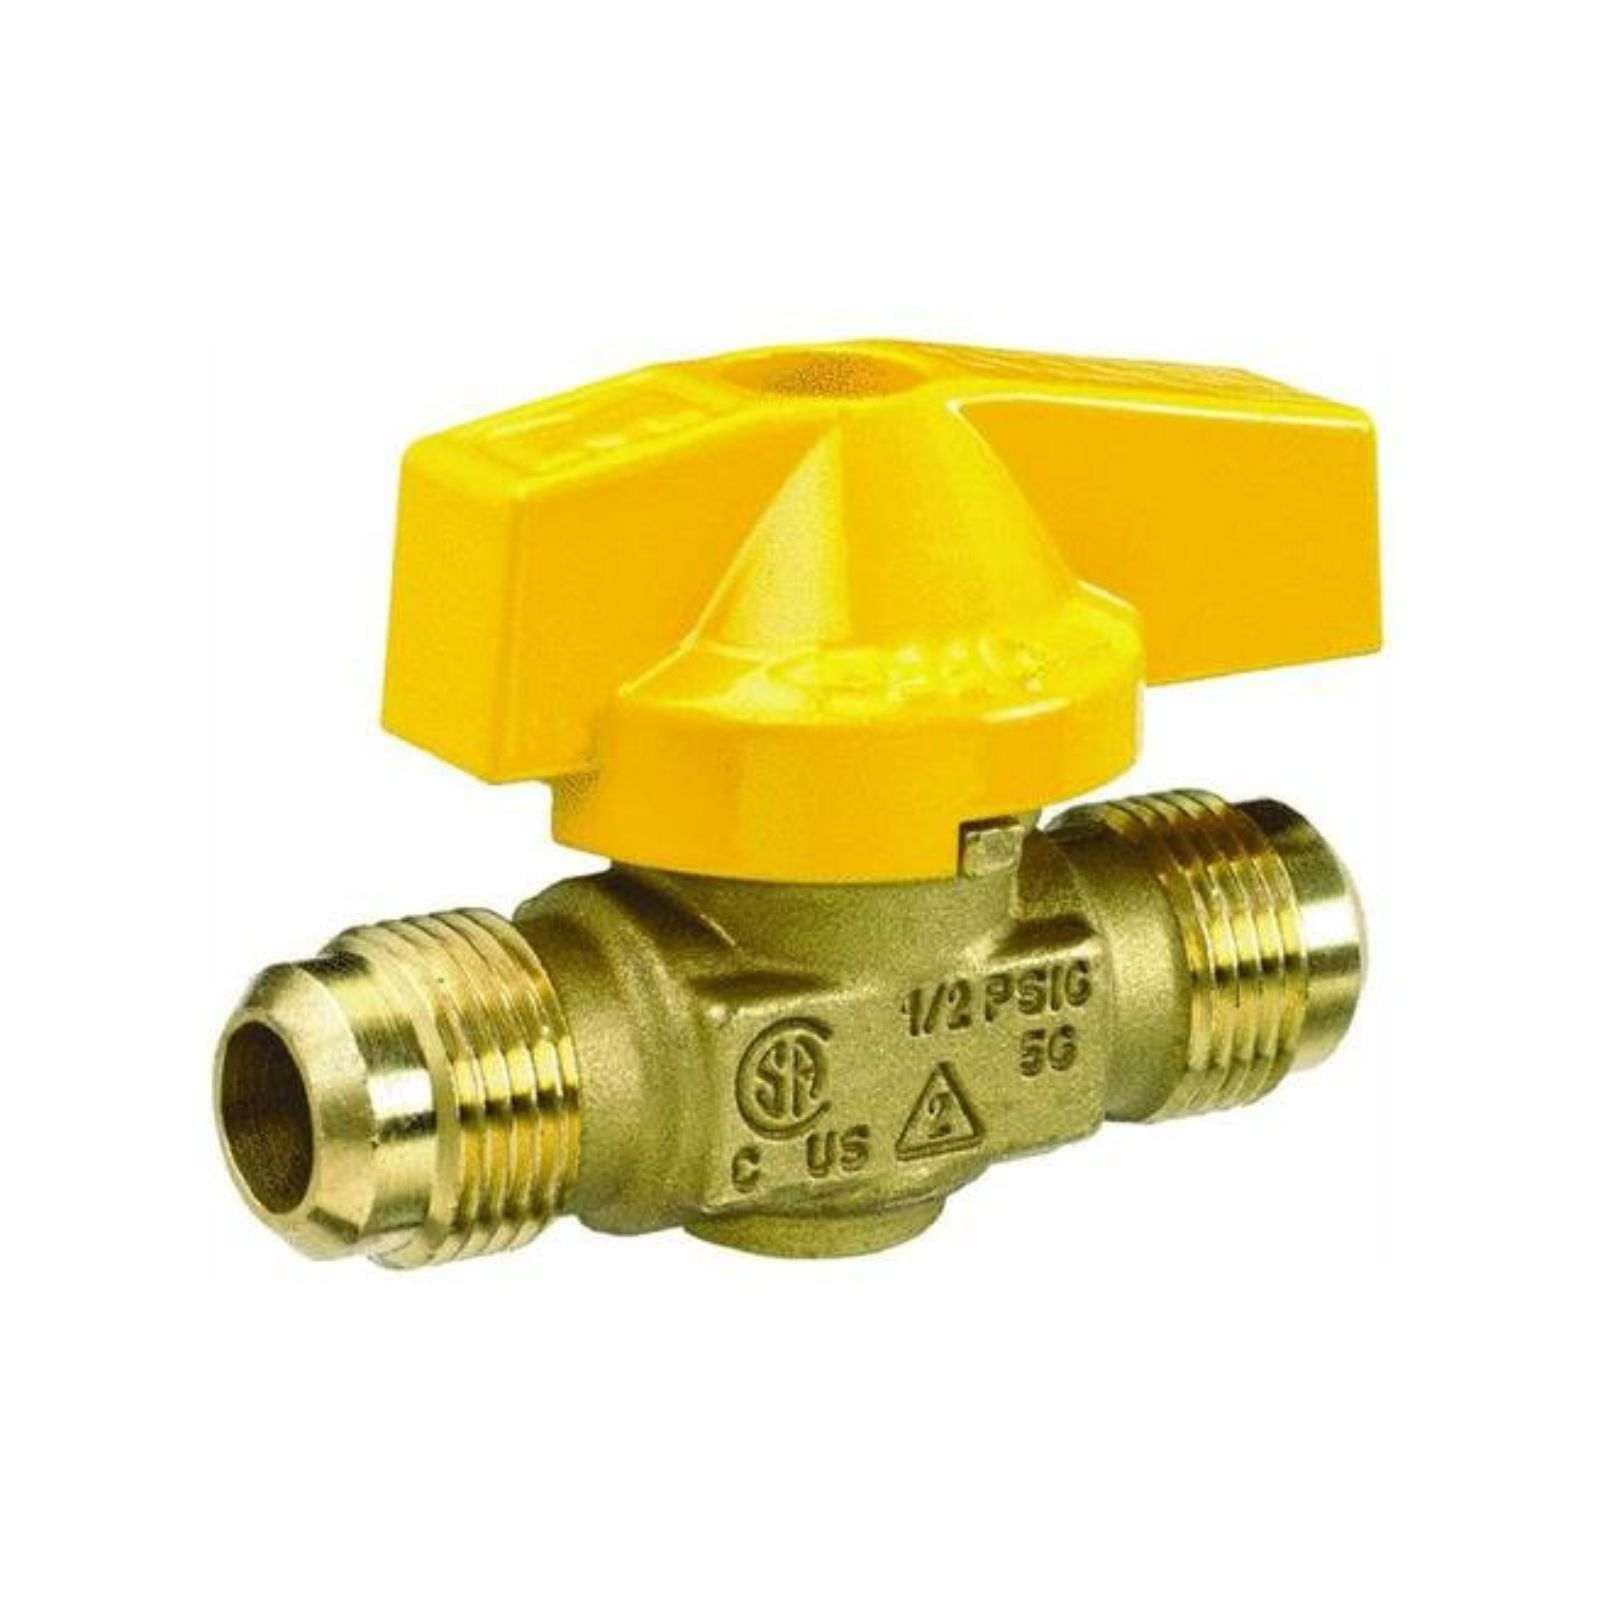 "ProLine Series 116-503 - Gas Cock Ball Valve 1/2"" Flare, 1 Piece Design"